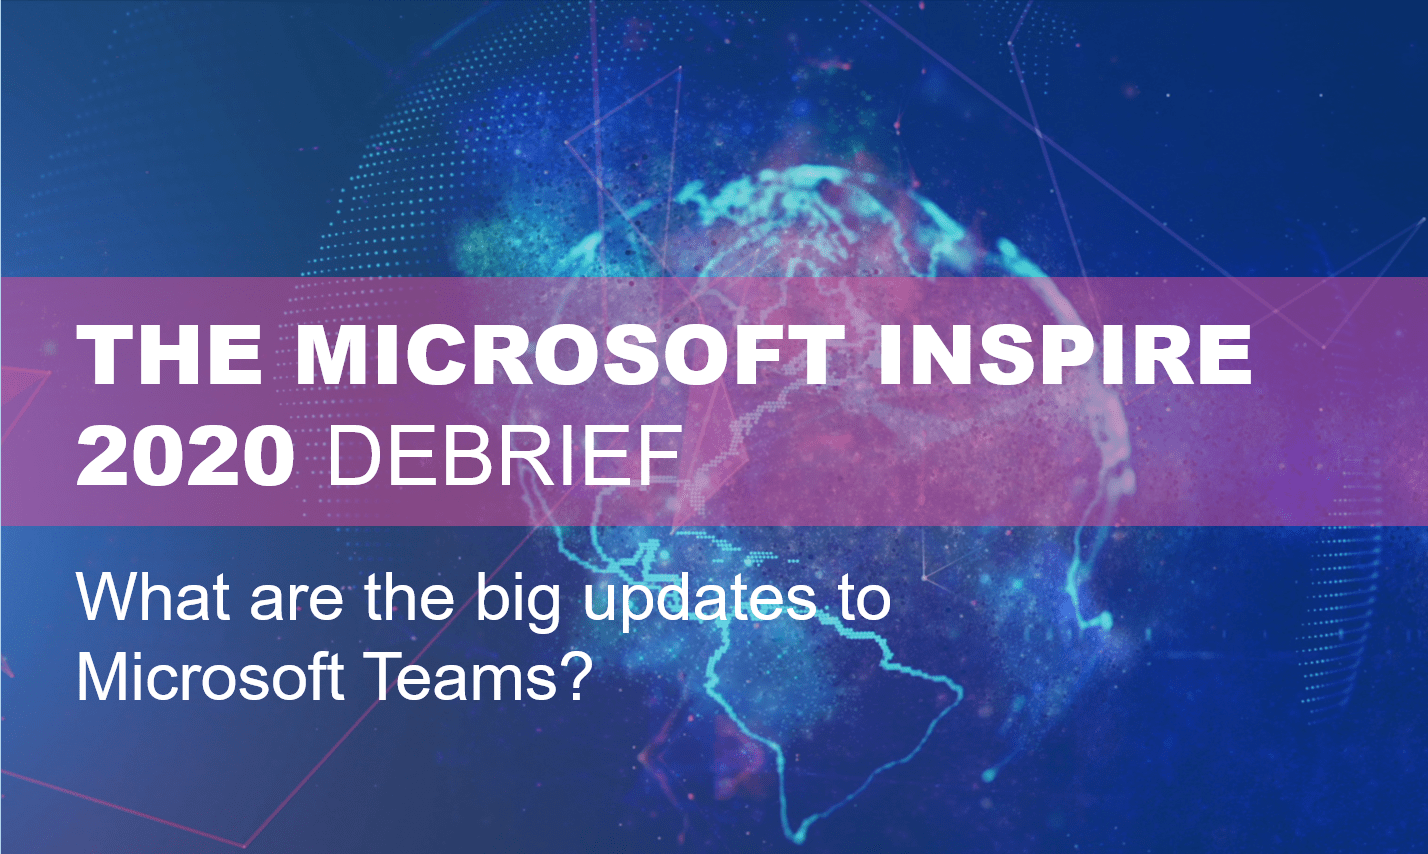 Microsoft Inspire Debrief and key updates to Teams